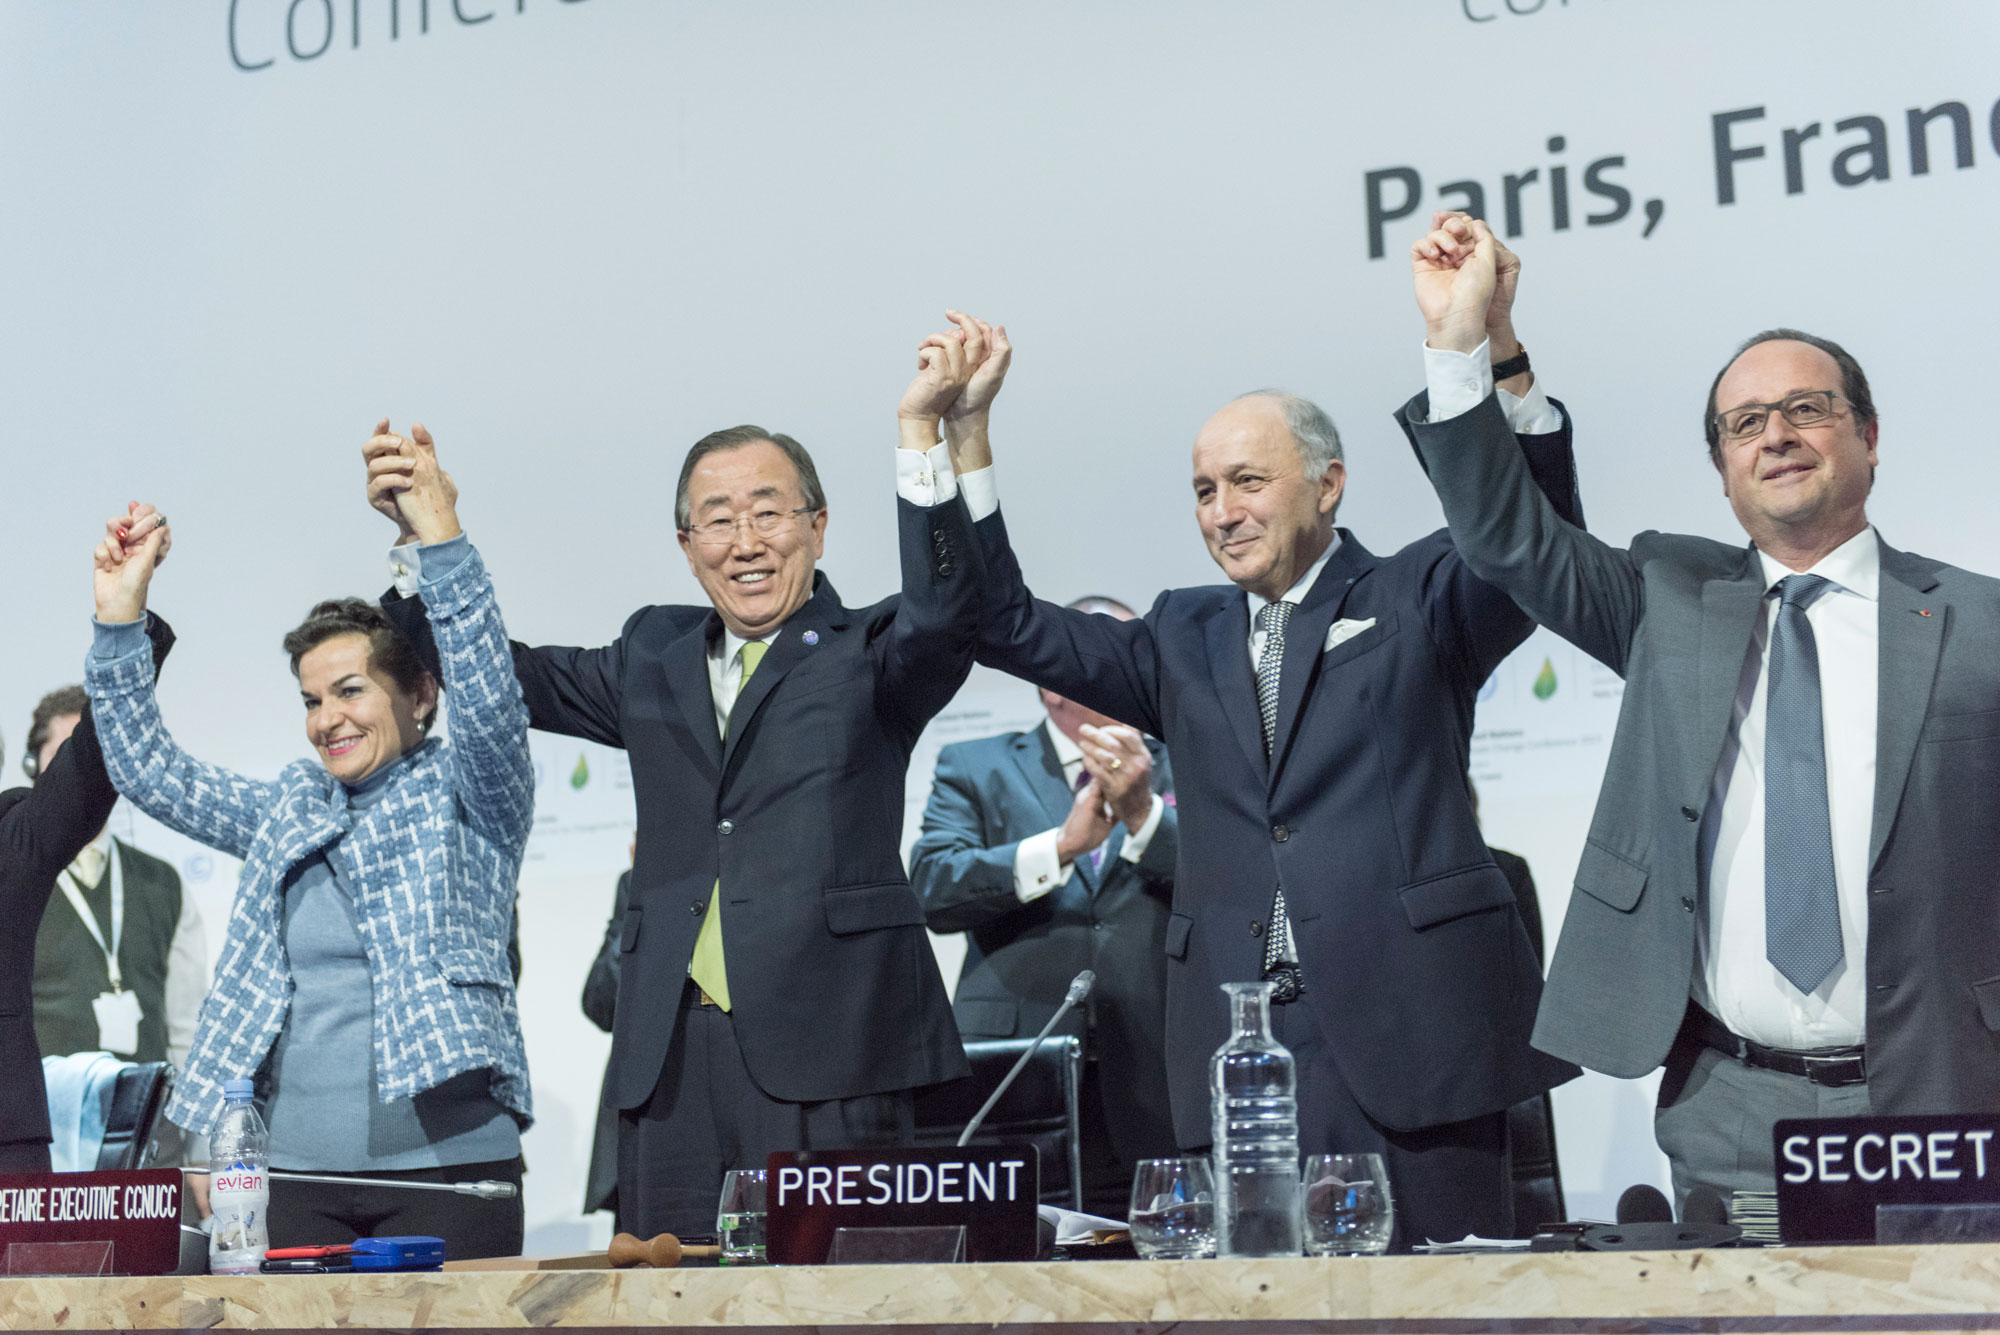 Secretary-General Ban Ki-moon (second left), UNFCCC's Christiana Figueres (left), French Foreign Minister Laurent Fabius and President of the UN Climate Change Conference in Paris (COP21), and President François Hollande of France (right), celebrate historic adoption of Paris Agreement. UN Photo/Mark Garten